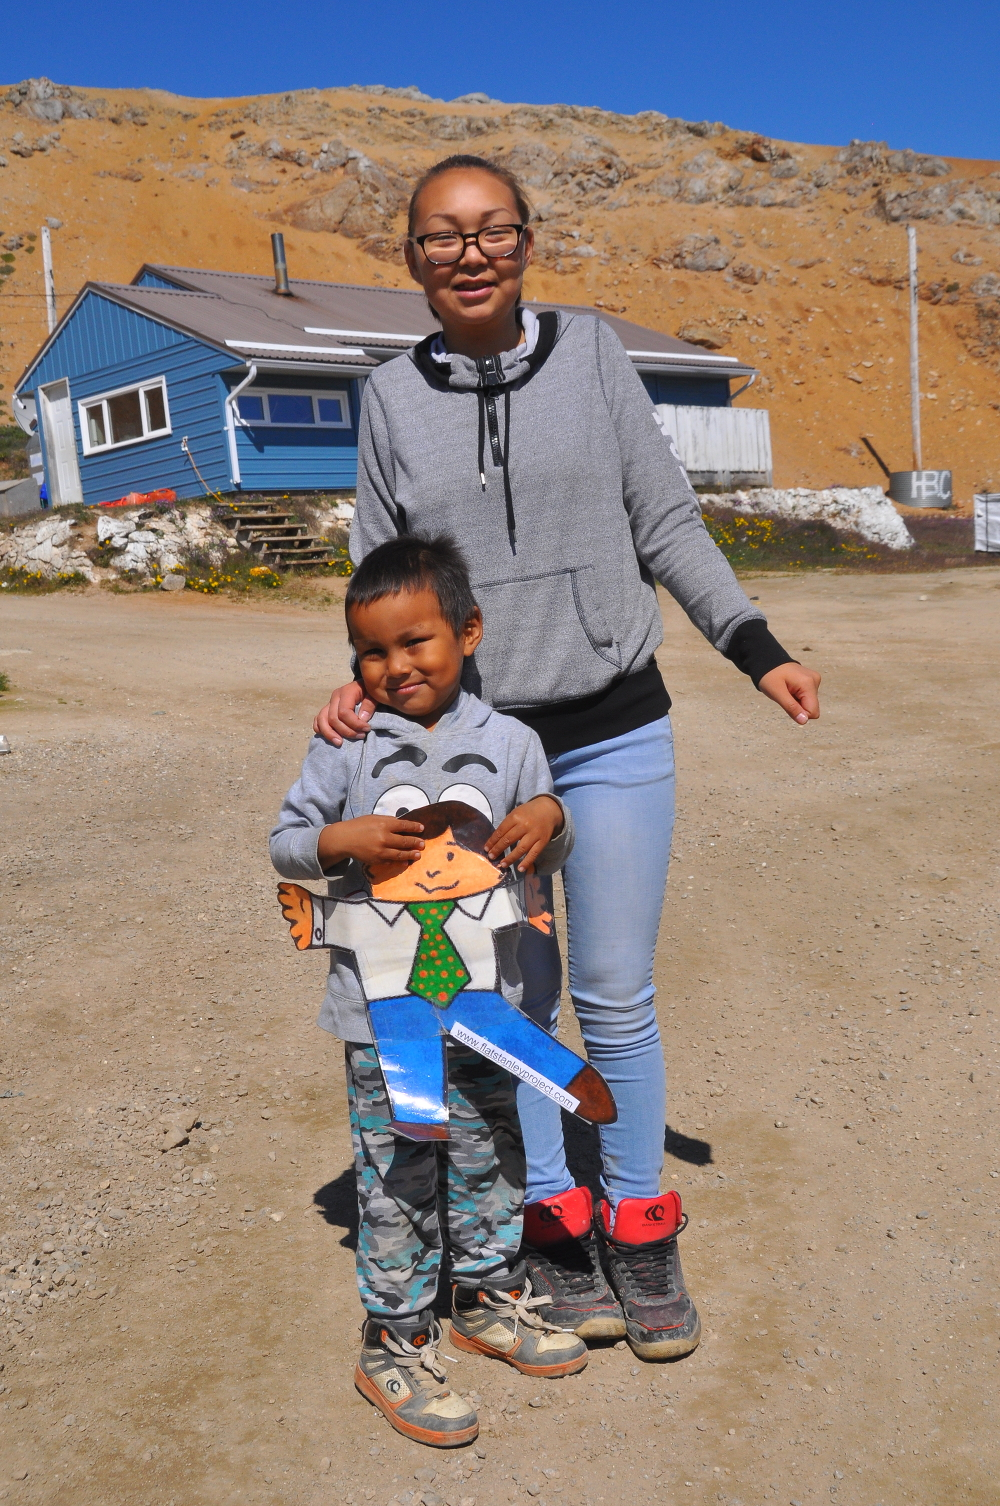 FS with Inuit child and mom